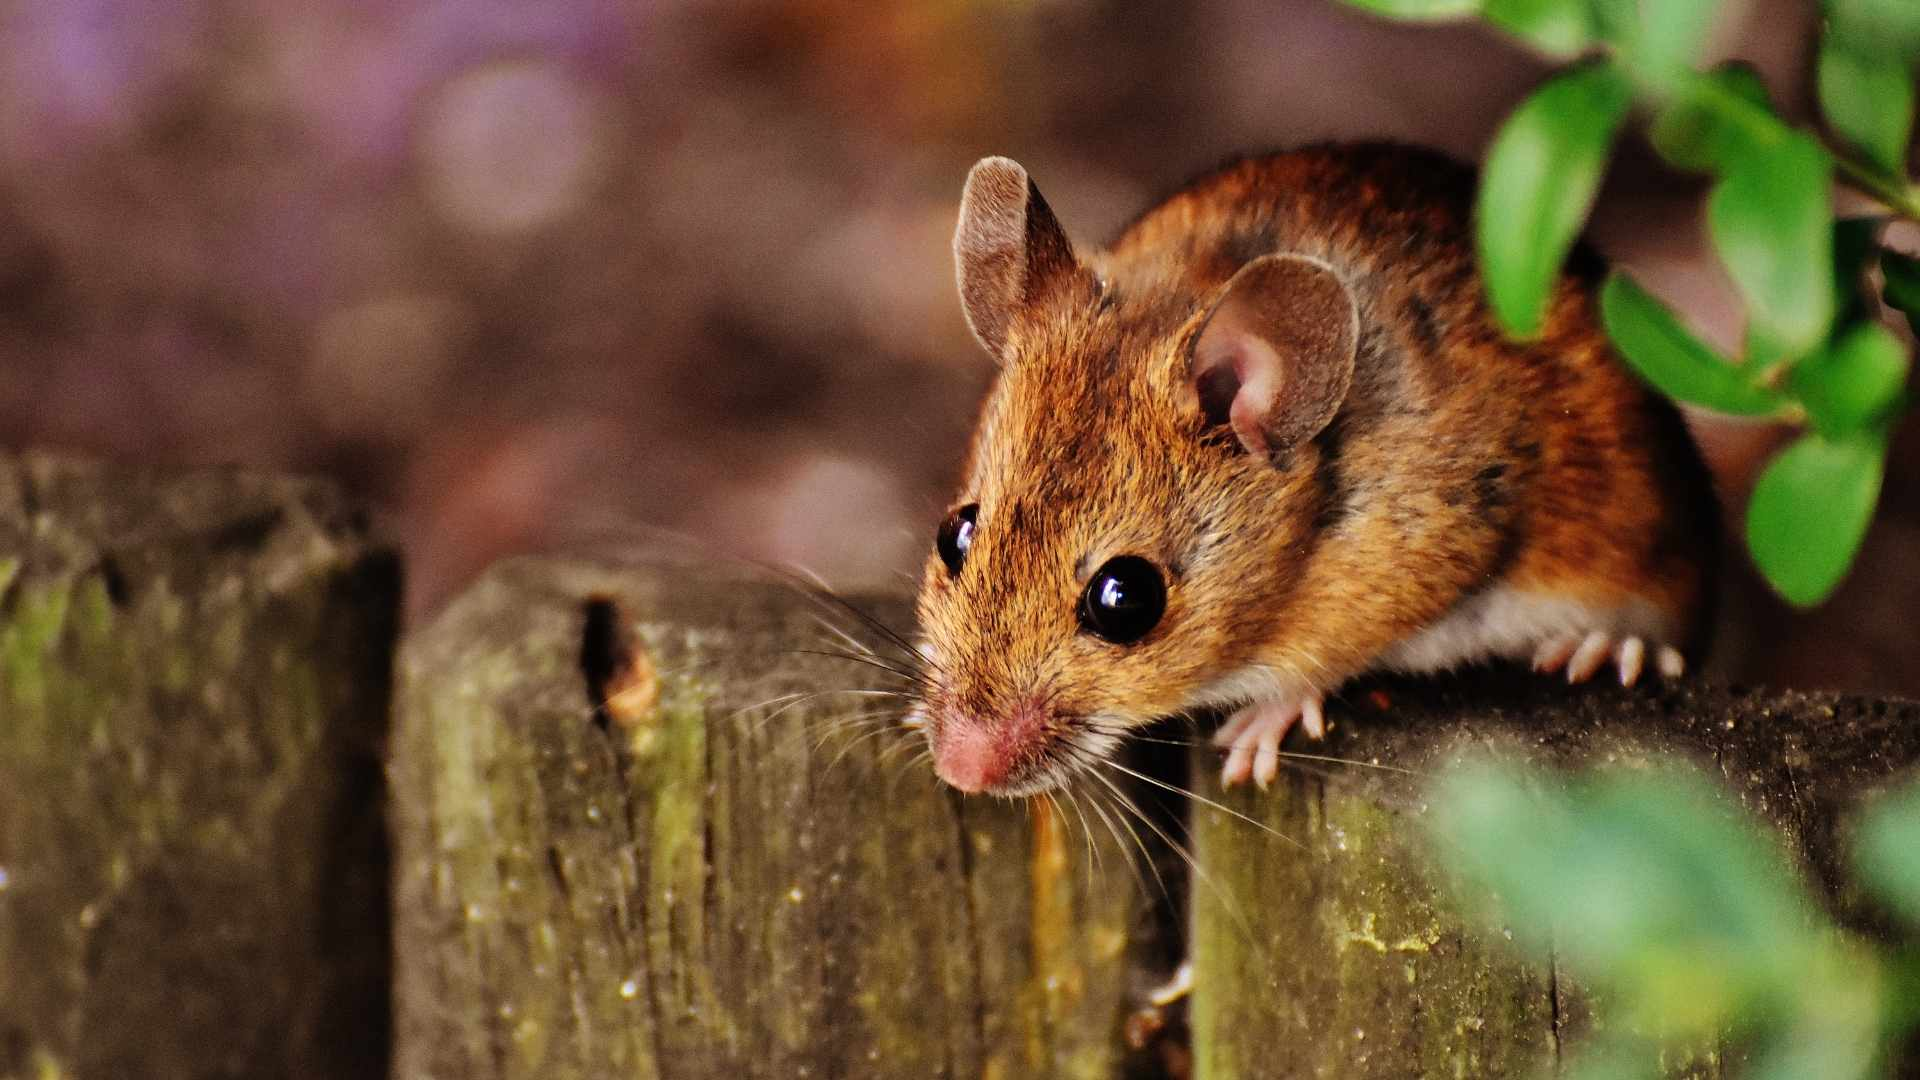 mouse climbed to the top of a fence peering down